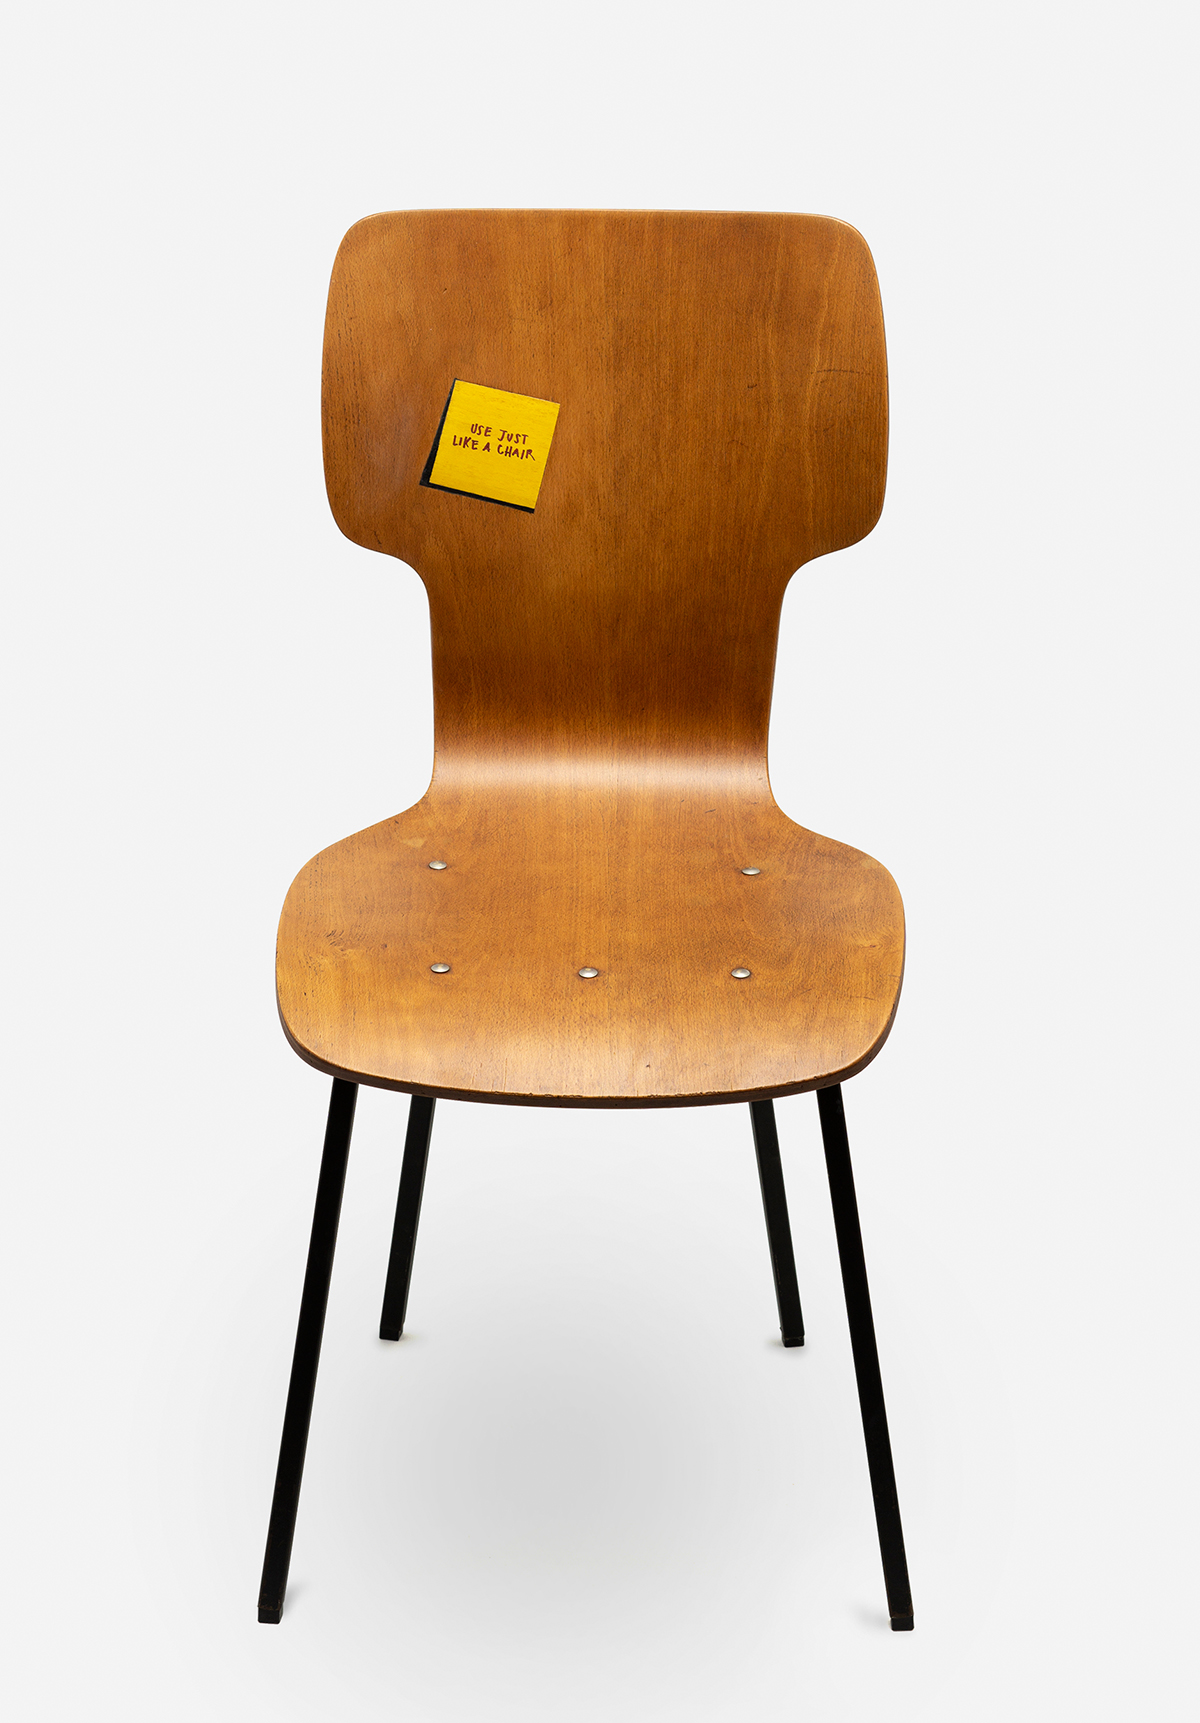 USE JUST LIKE A CHAIR - Marcantonio design